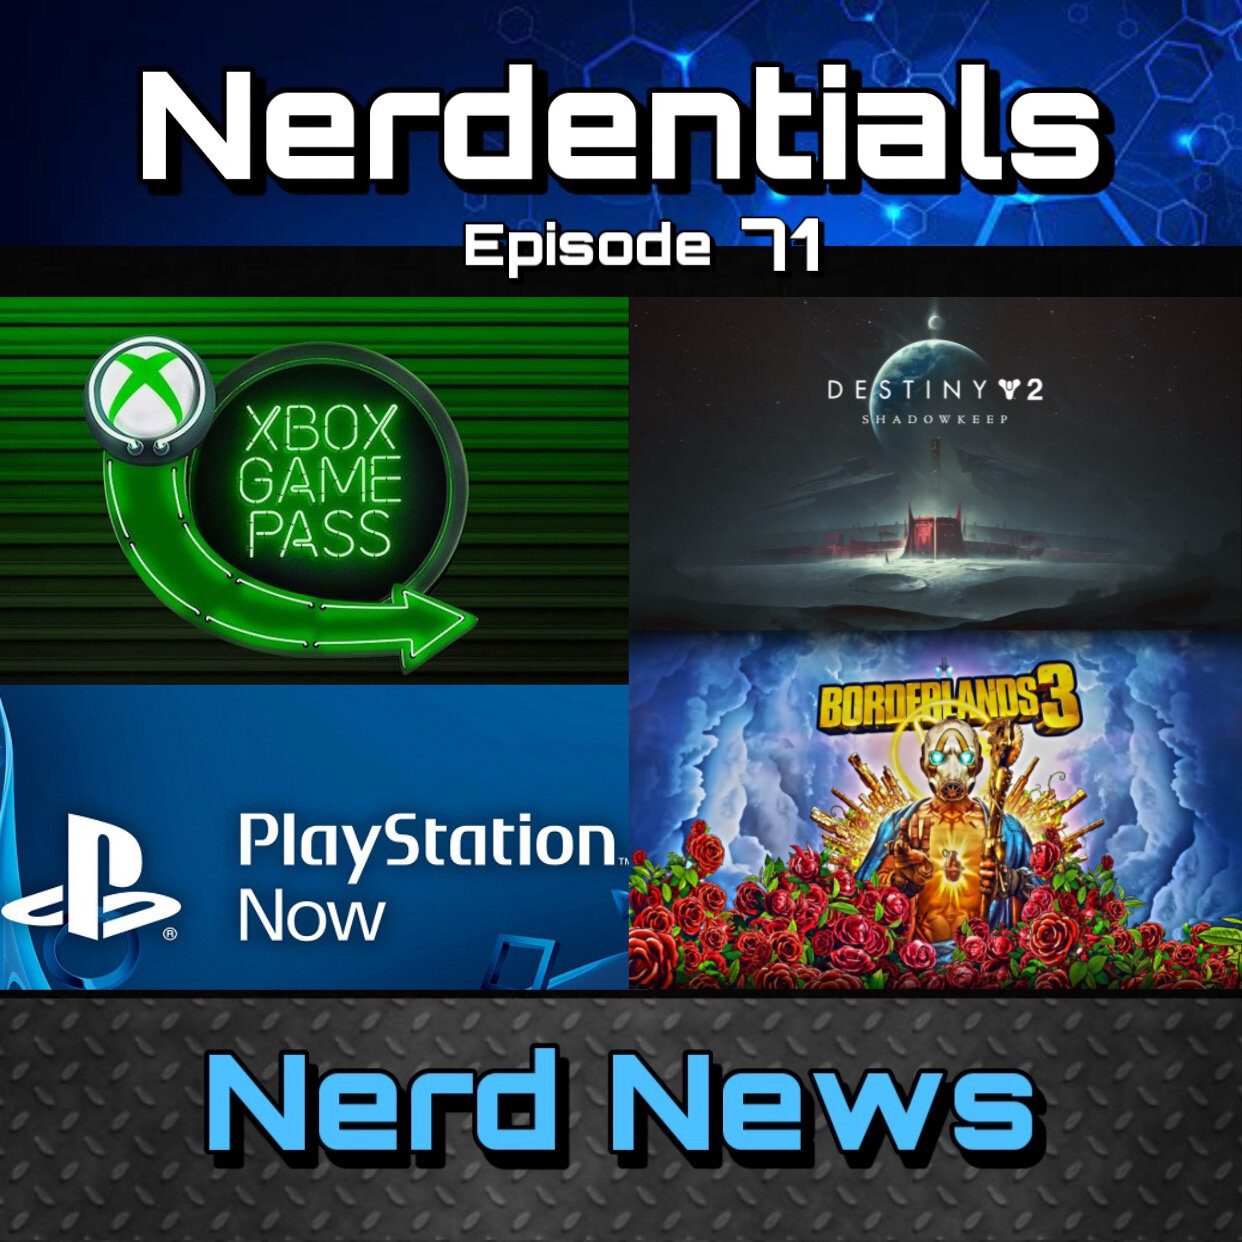 - Welcome to Nerdentials! Your weekly dose of the nerdy essentials. Covering Film, TV, Video Games and Comics.This week the nerds cover the changes Sony has made with its game streaming services to compete against others like Xbox's Game Pass.Then Lynn and Matt review and breakdown their thoughts on Borderlands 3.Then we go deep on the new Bungie released Destiny 2 expansion Shadowkeep! Enjoy!